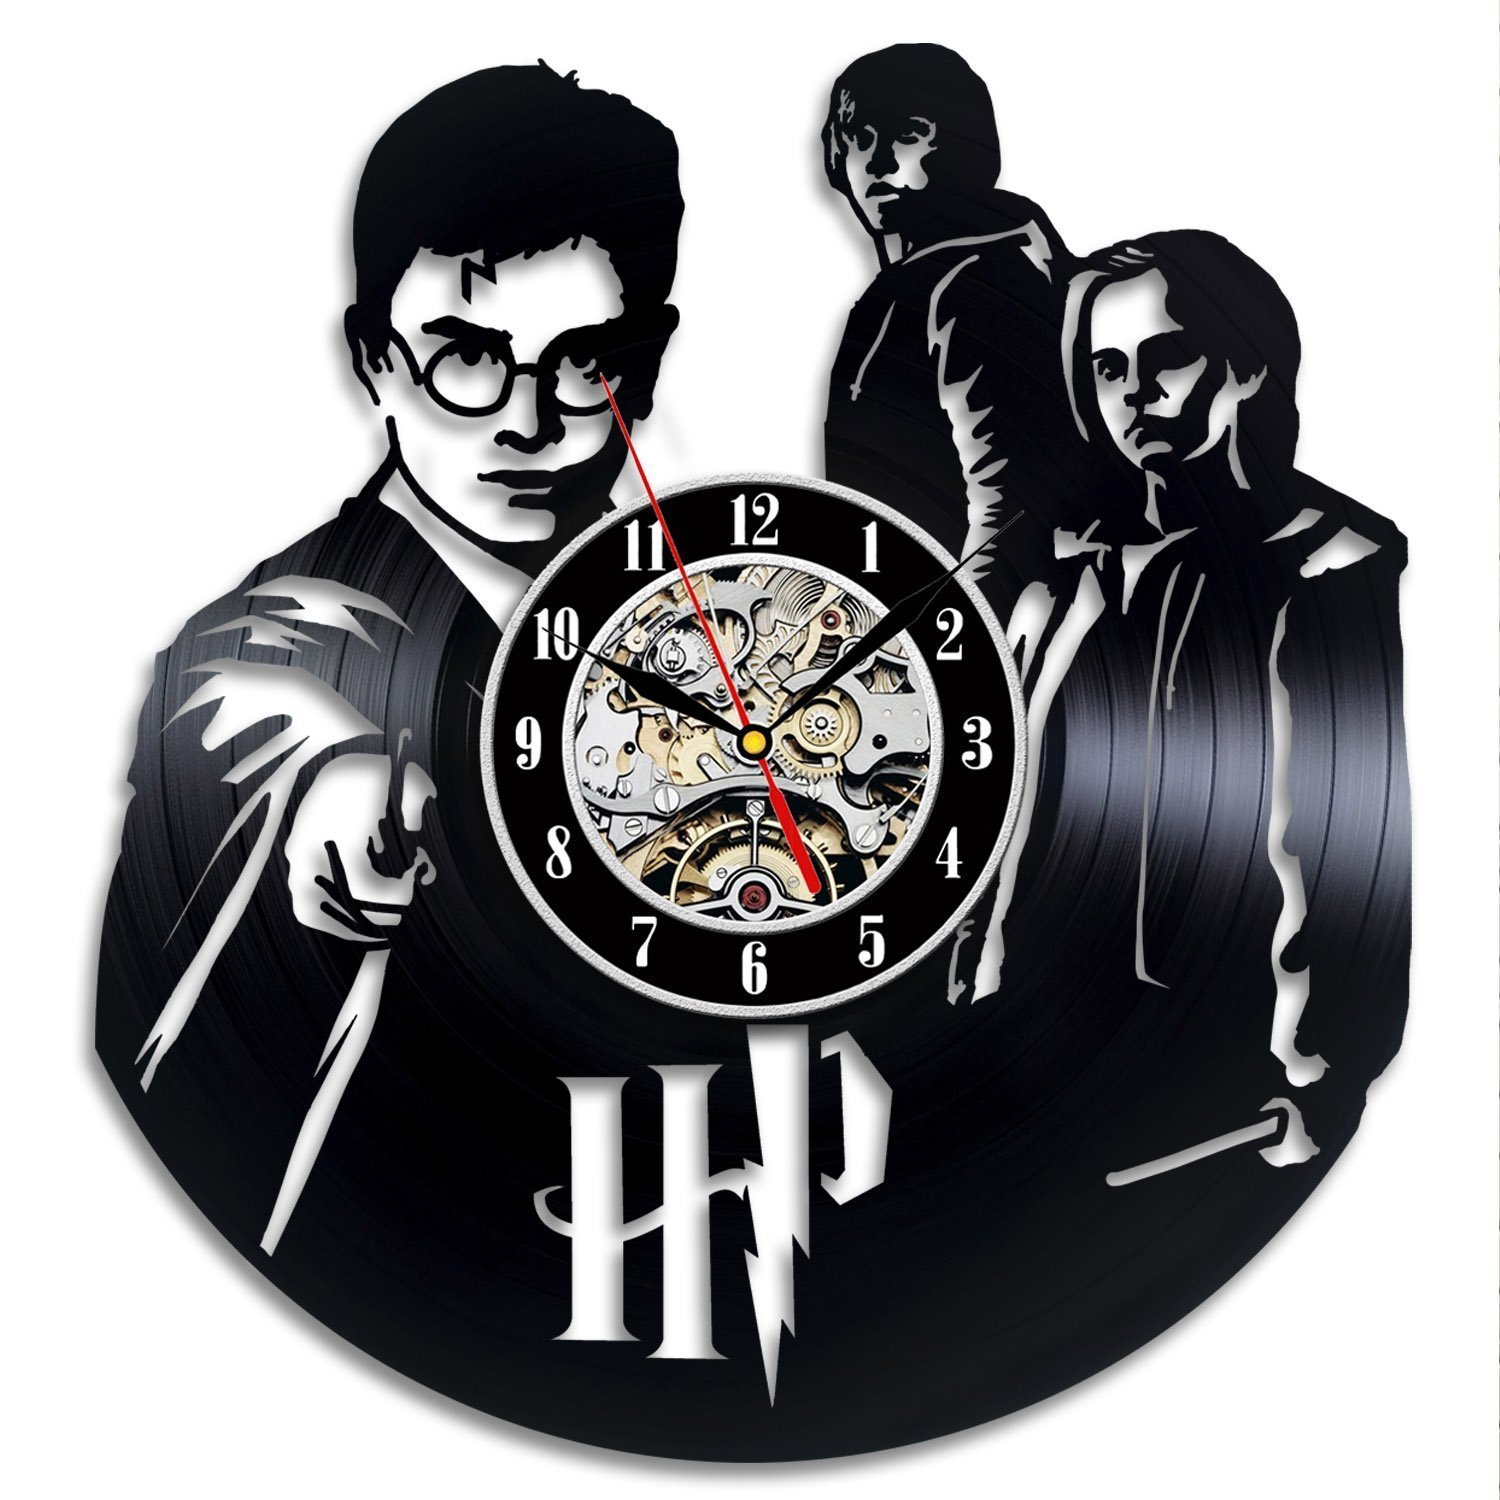 Harry Potter Vinyl Record Wall Clock - Decorate your home with Modern Art - Gift for men and women, girls and boys - Win a prize for a feedback VinylEvolution VE211